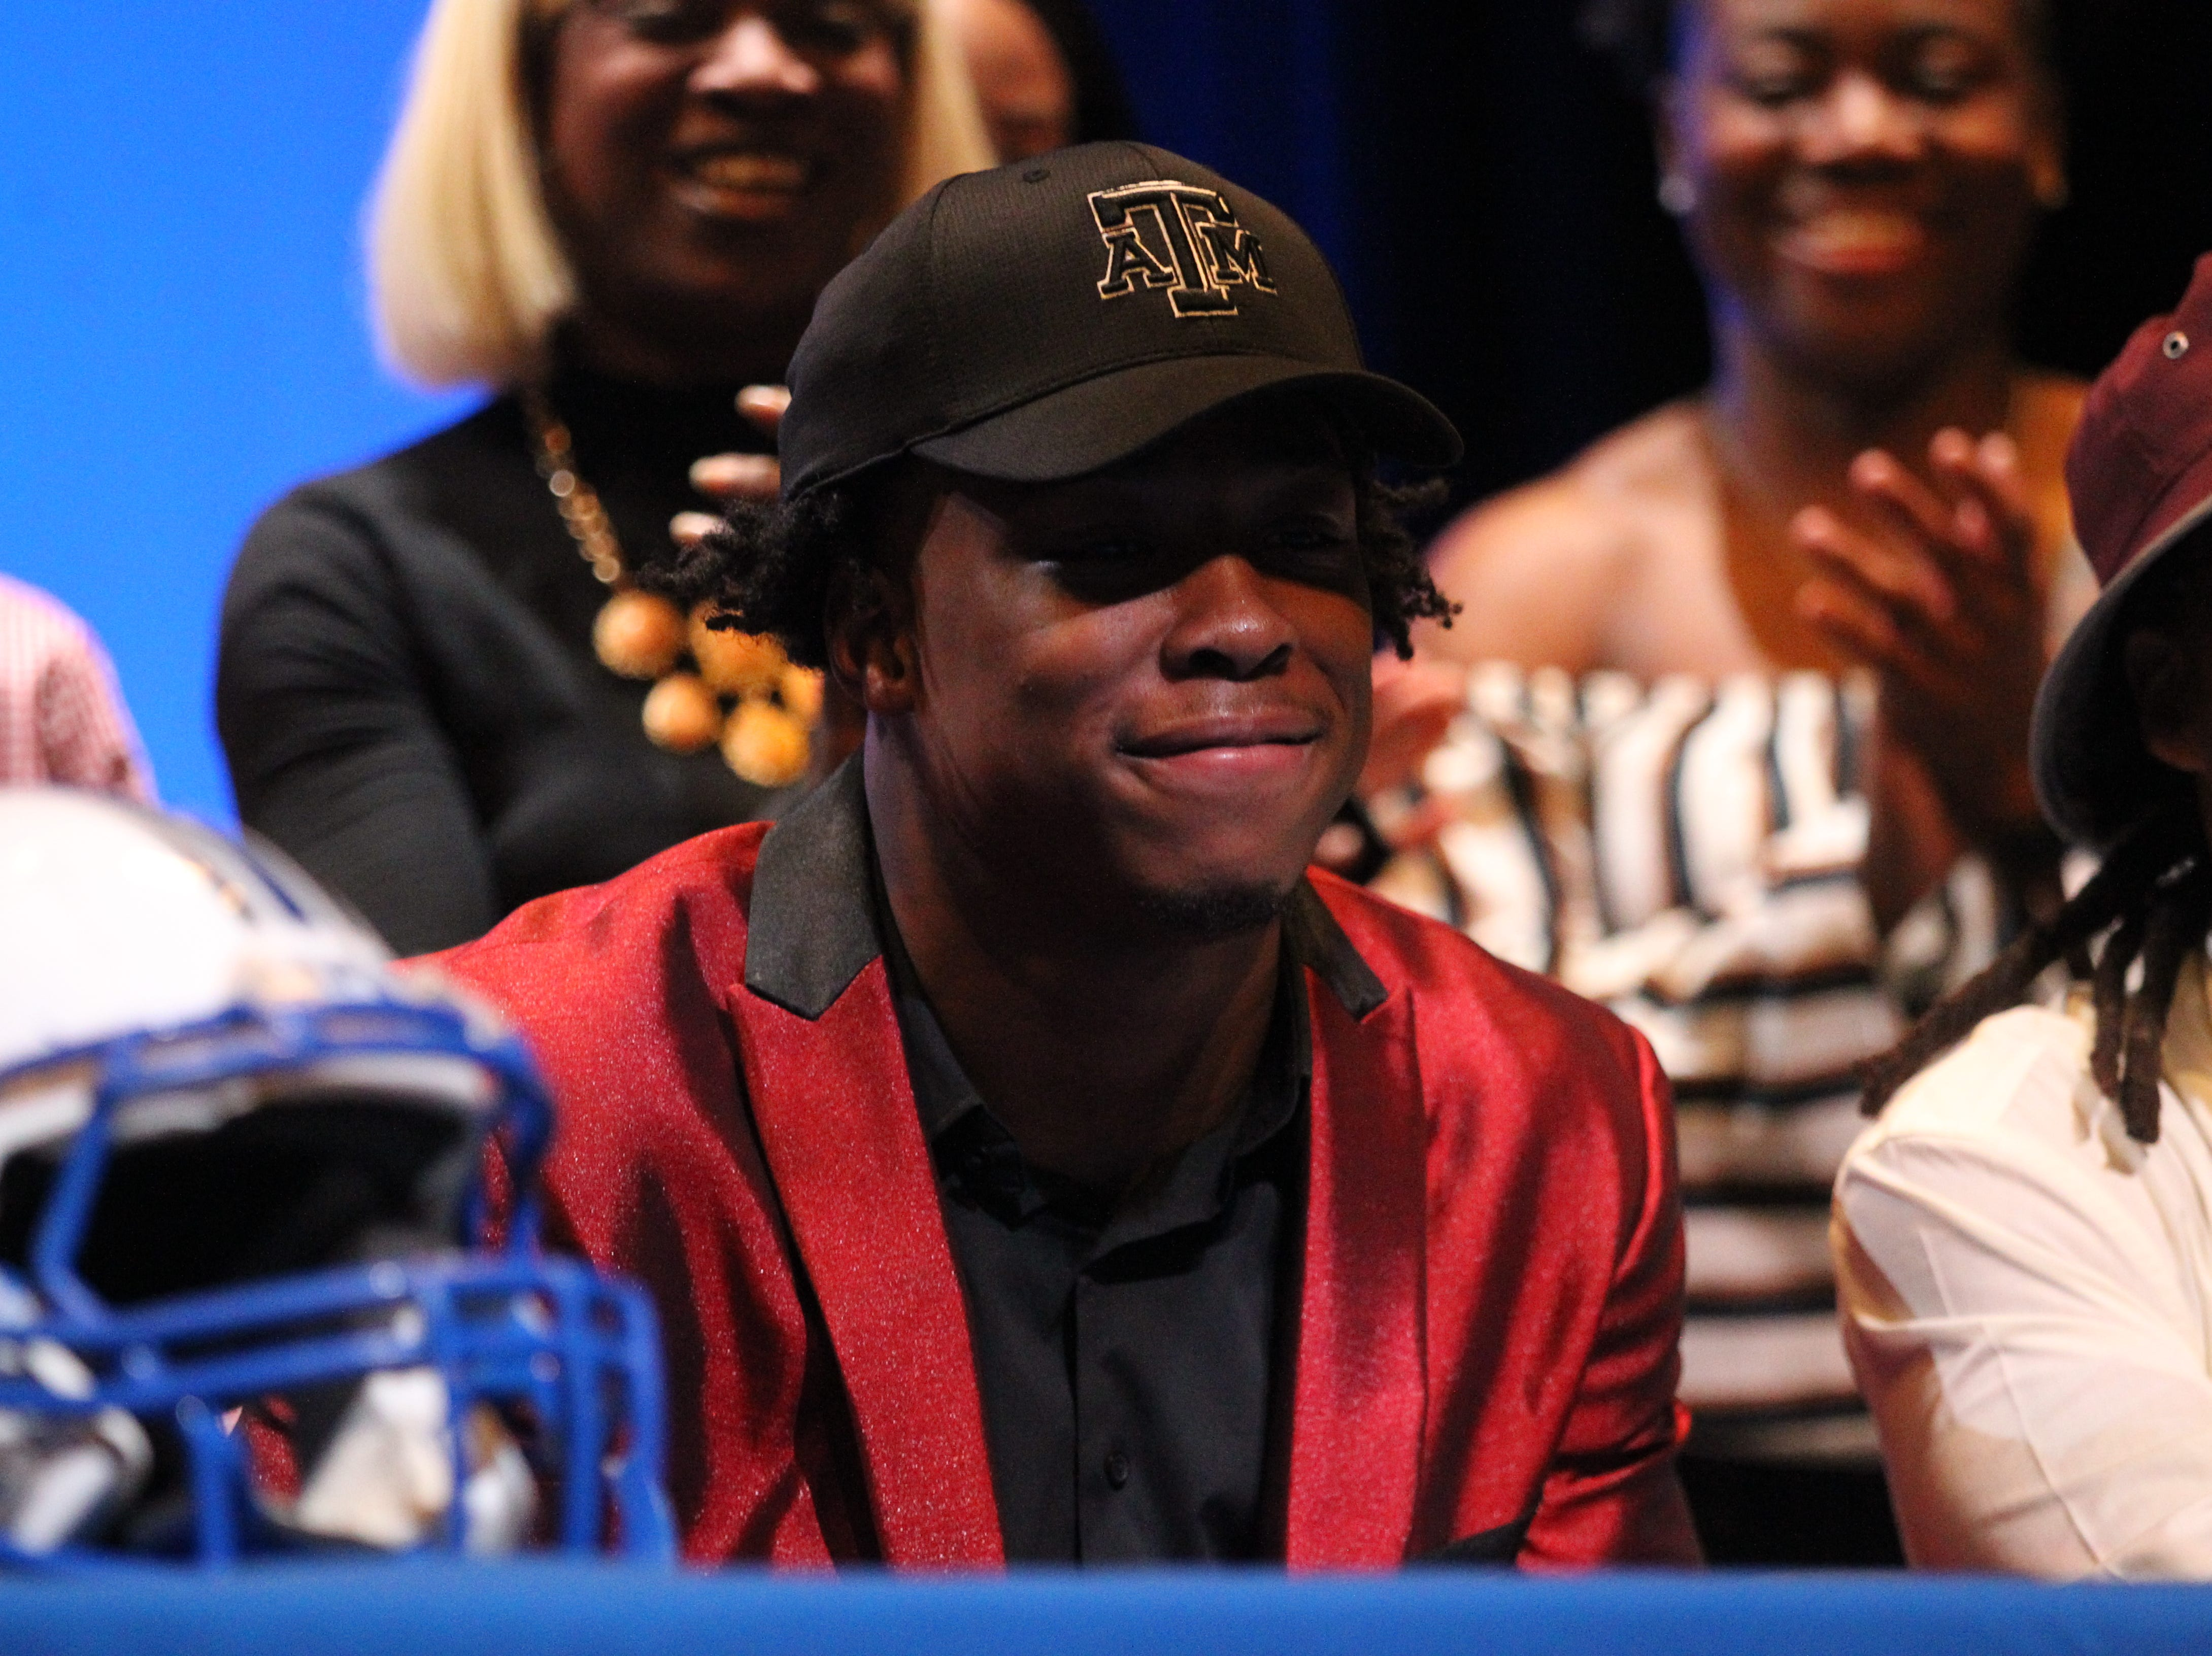 Godby linebacker Tarian Lee Jr. signed with Texas A&M during signing ceremonies on National Signing Day, Feb. 6, 2019.